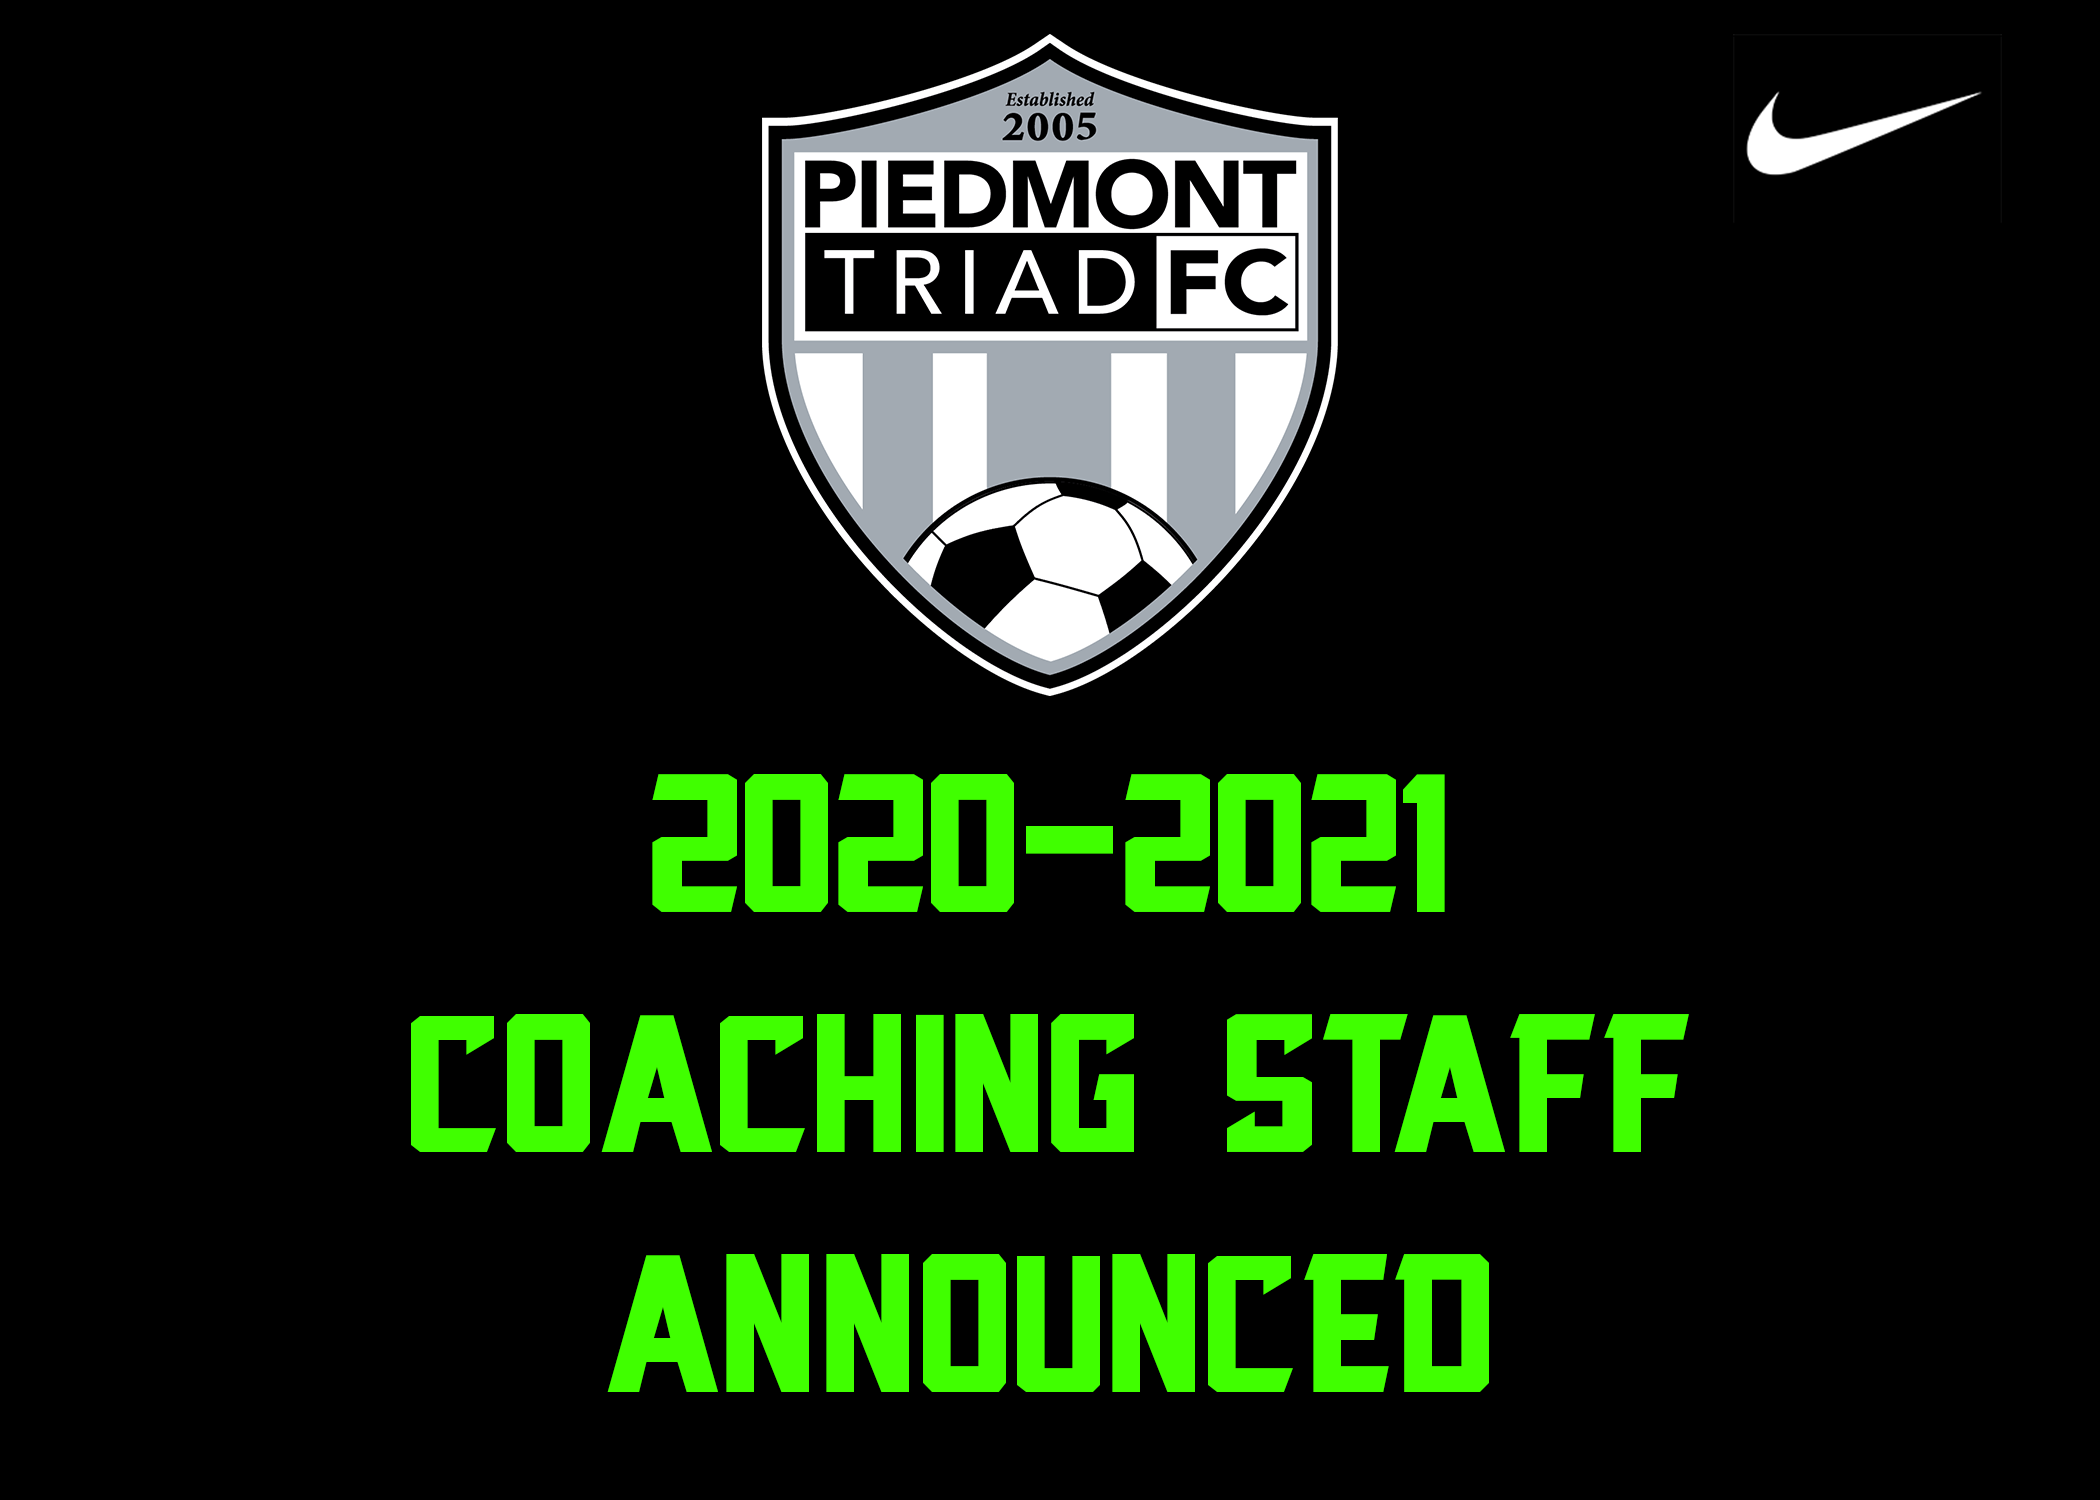 2020-2021 Coaching Staff Announced